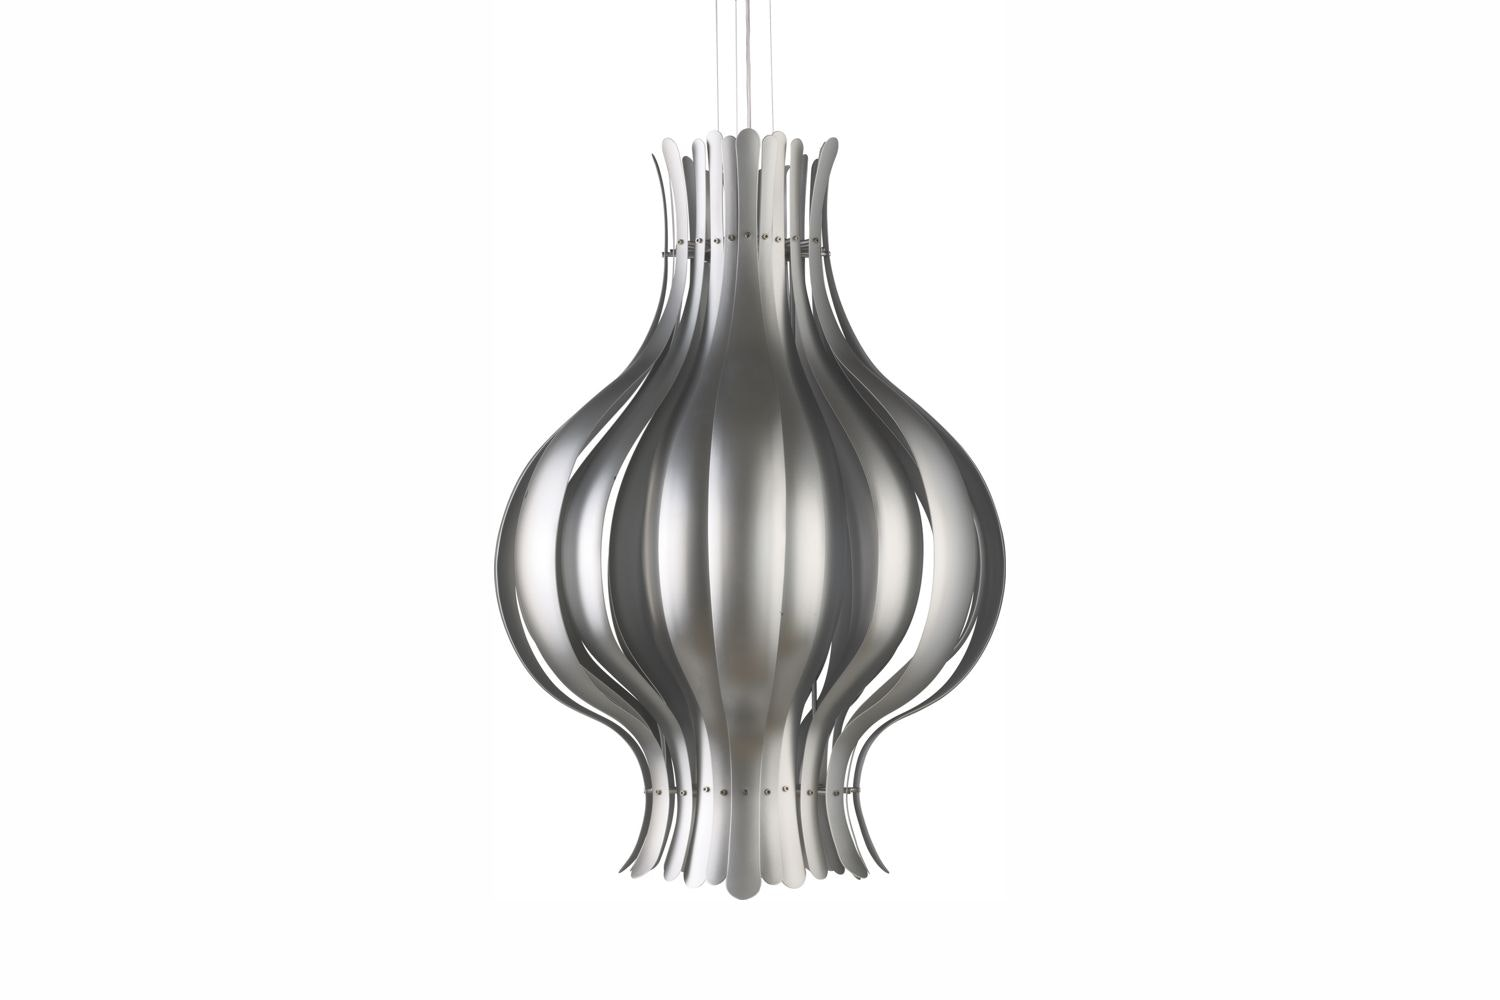 Onion Large Pendant Lamp in Silver by Verner Panton for Verpan